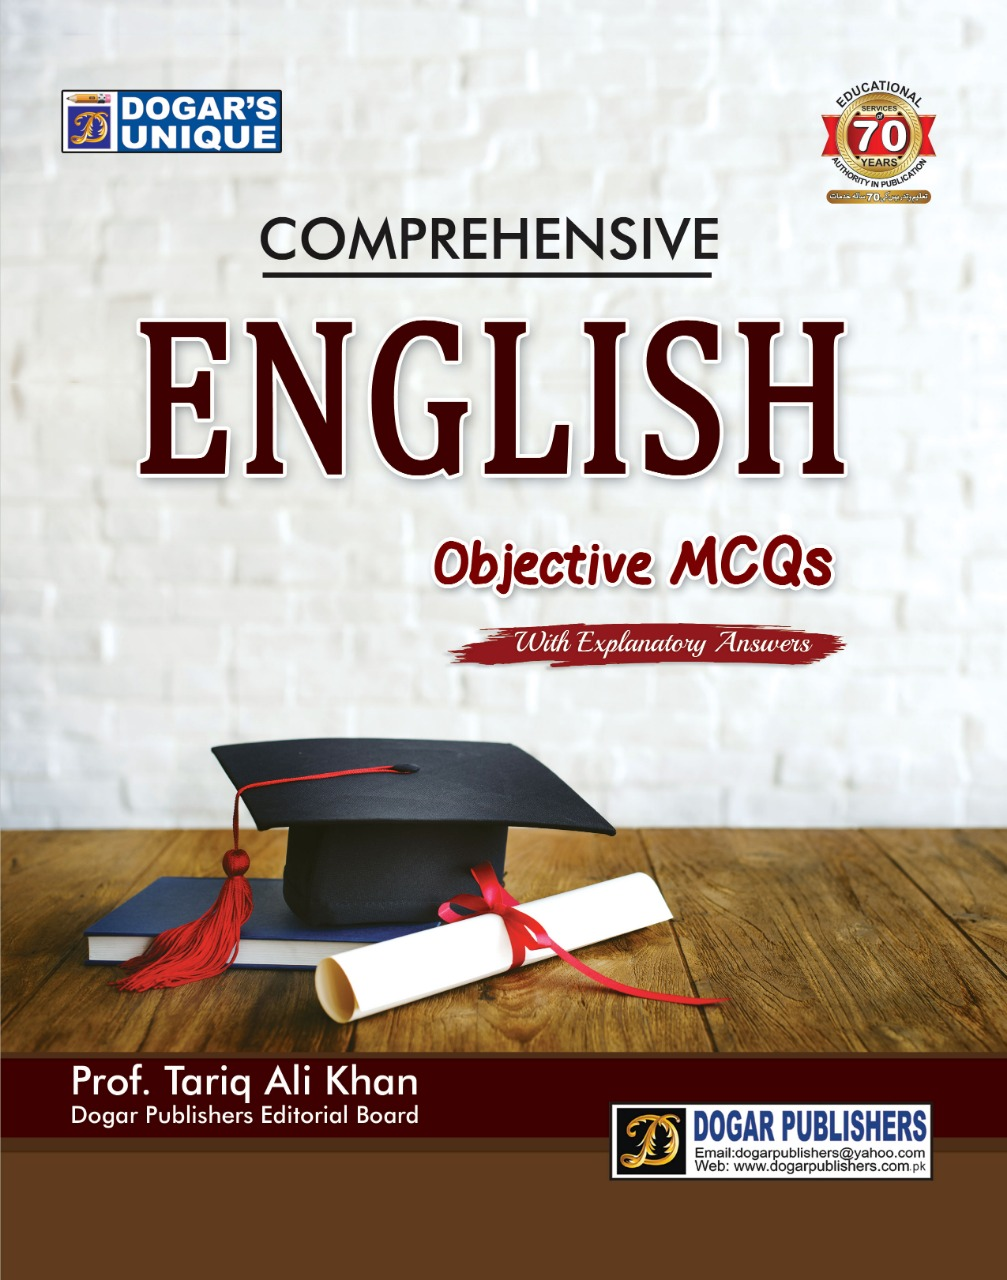 Comprehensive English Objective MCQS with Explanatory Answers